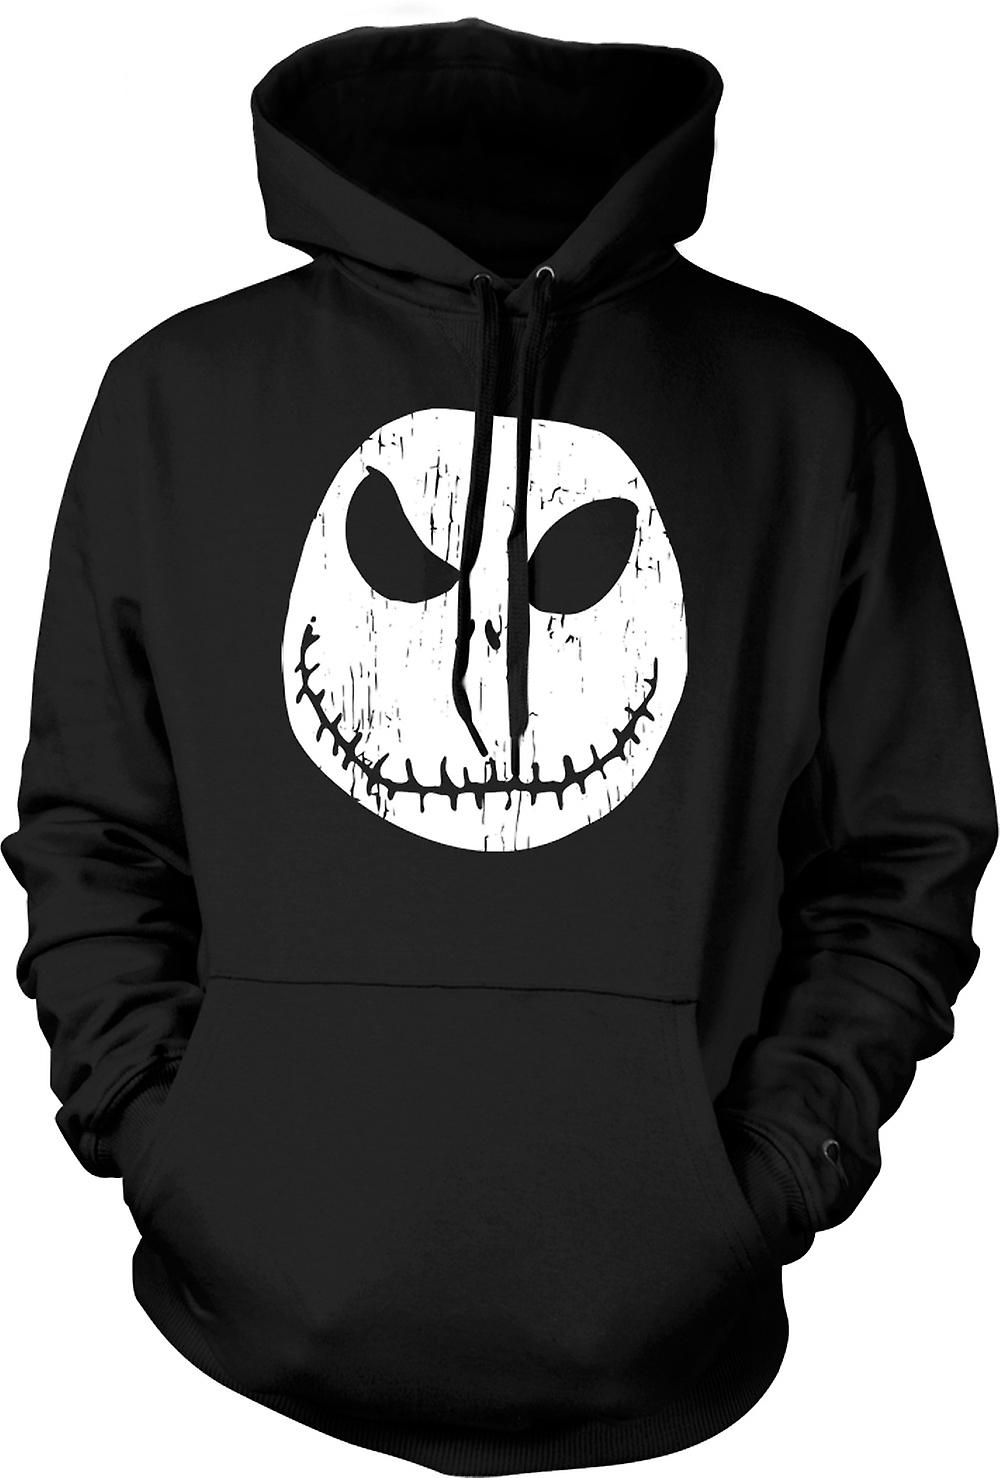 Mens Hoodie - Scary Halloween Pumpkin - Smiley Face